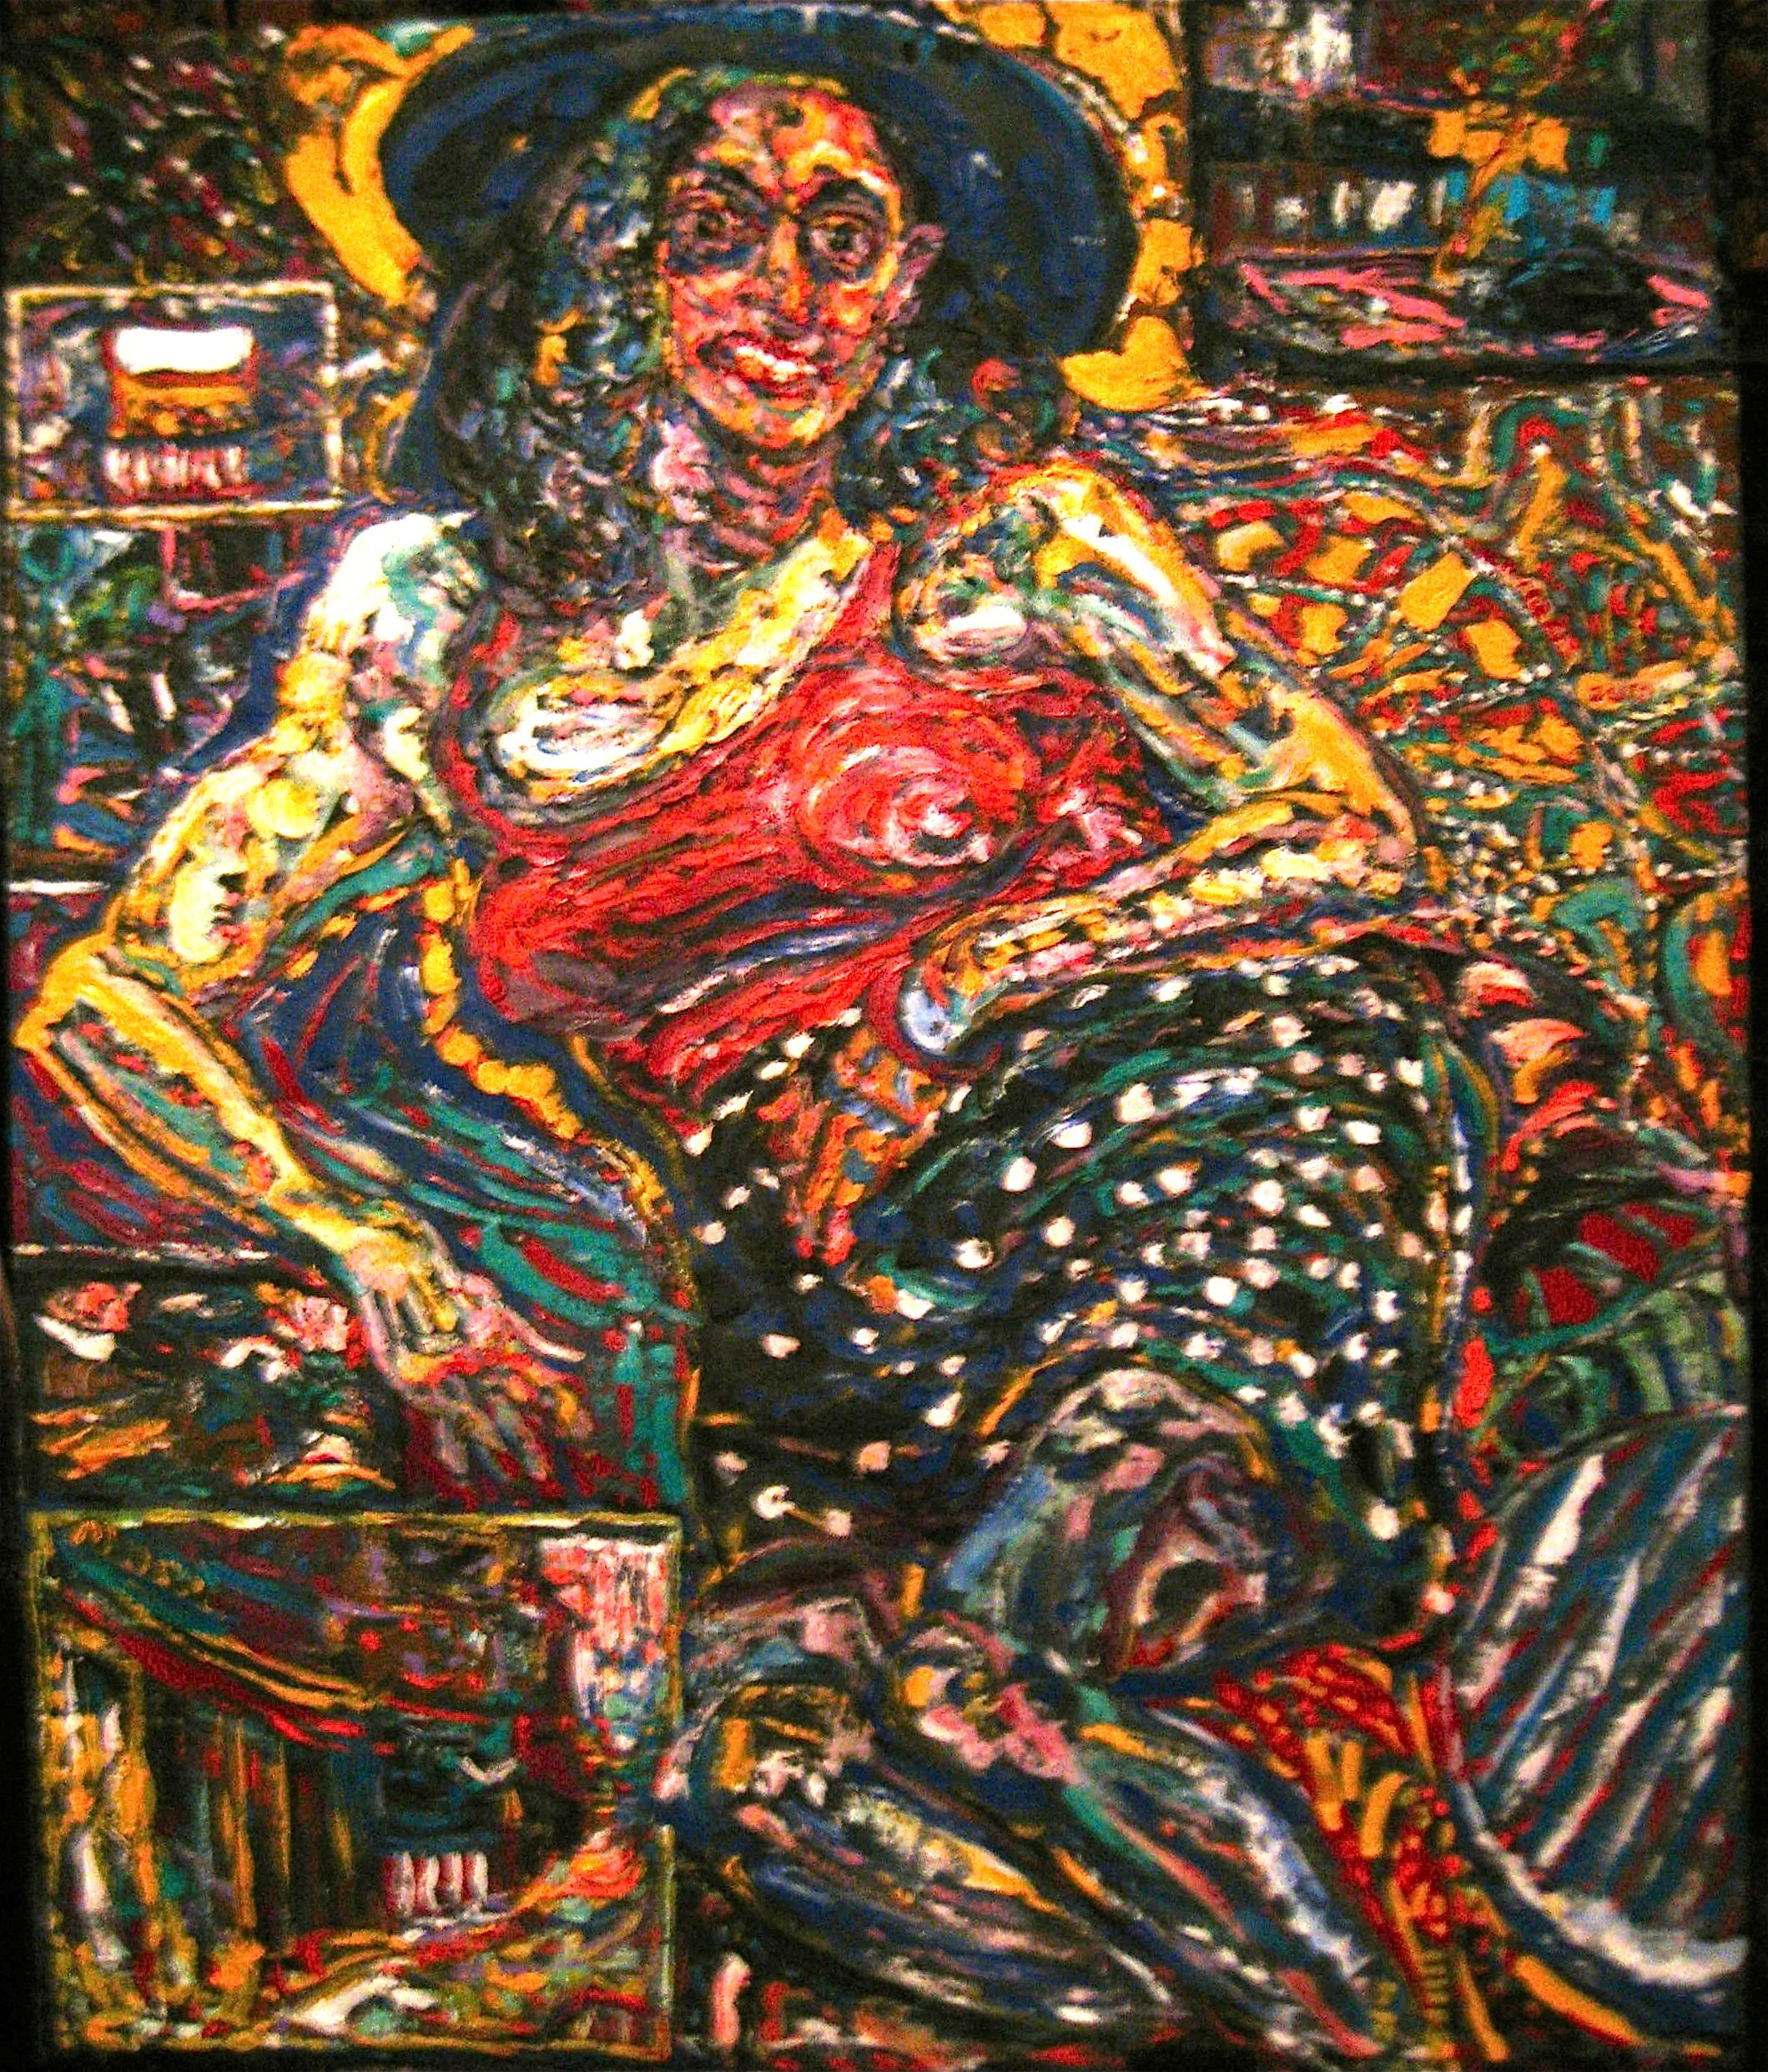 """PHILIP LAWRENCE SHERROD NA (STREET*PAINTER)-*PAINTING*-..(*NYC*/-..*PLEIN*AIR*!)?(*FOUNDER*/-..-*STREET*PAINTERS)!? """"THE*LADY-..(..-A..B./-..WF'THA'*HAT(!)?-..&*POLKA*DOT*SKIRT(!)?-. .*COMES*/- .. *FROM/-..*YONKERS!)""""(?)  MEDIUM: OIL/-&*ACRYLIC SIZE: 58"""" X 48"""" DATE: 2010  artist's(C)copyright"""